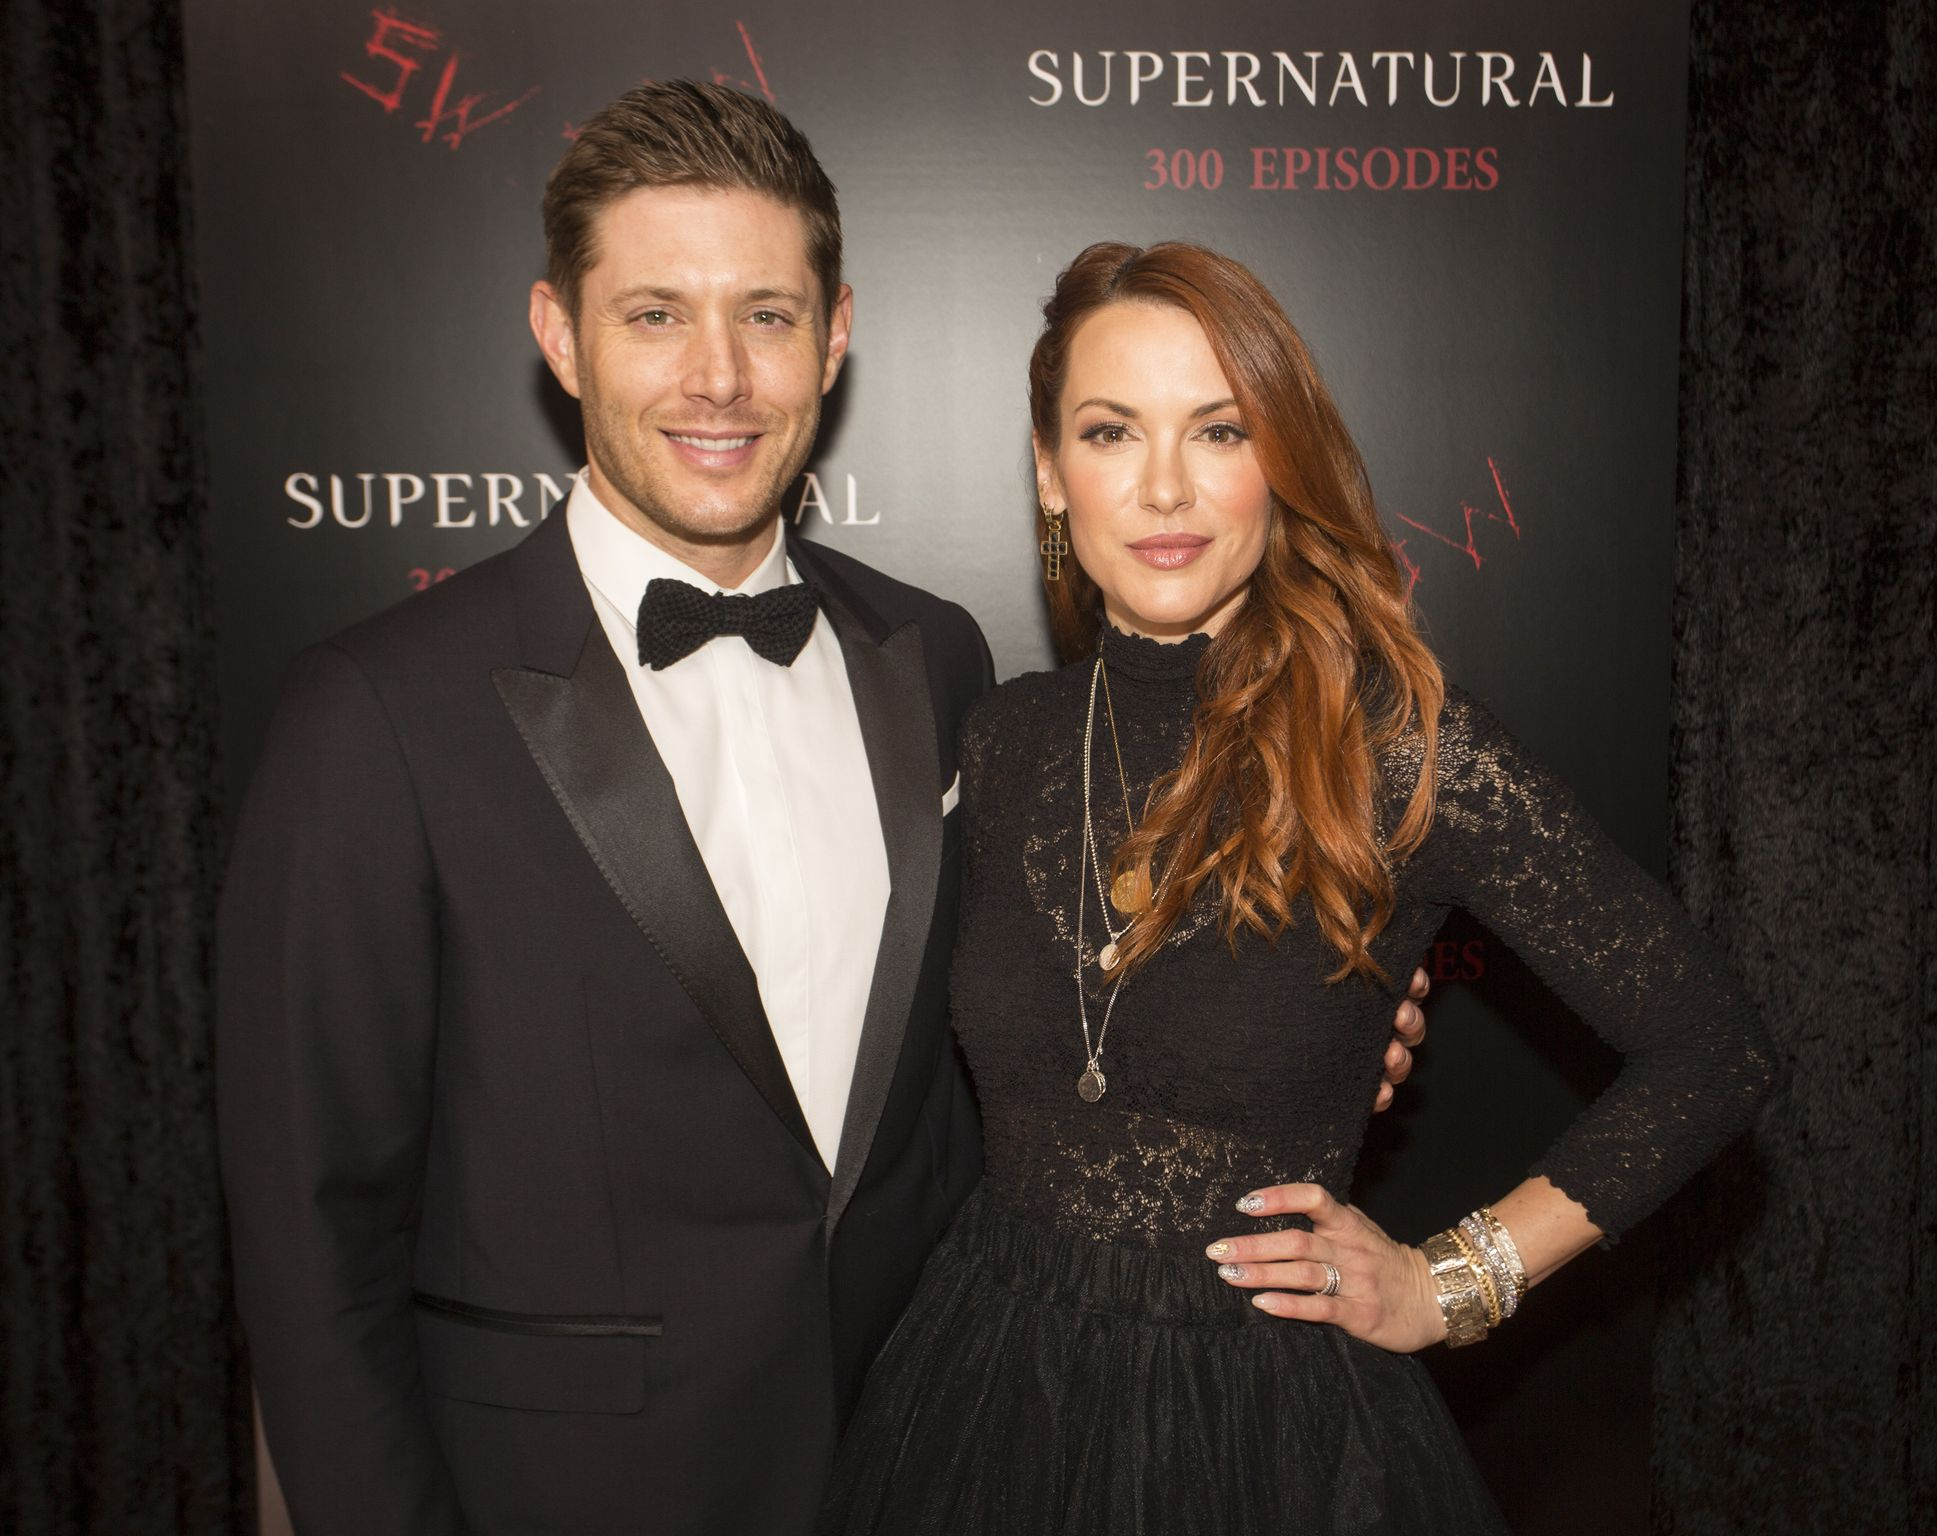 """Jensen Ackles and Danneel Ackles at the red carpet at the """"SUPERNATURAL"""" 300TH Episode Celebration in 2018 in Vancouver   Source: Getty Images"""